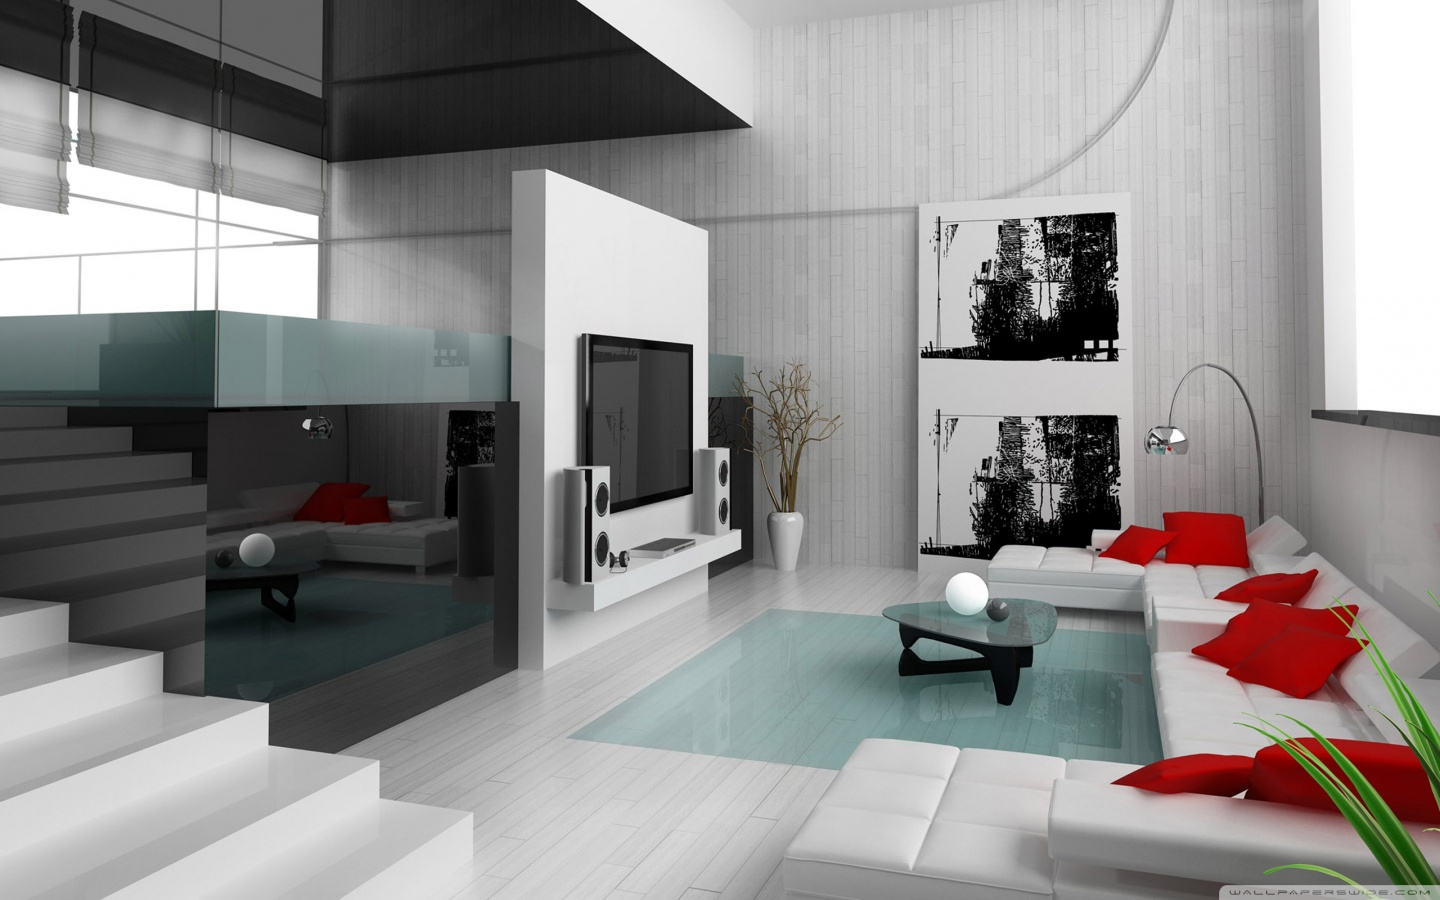 Minimalist interior design imagination art architecture for Minimalist home design